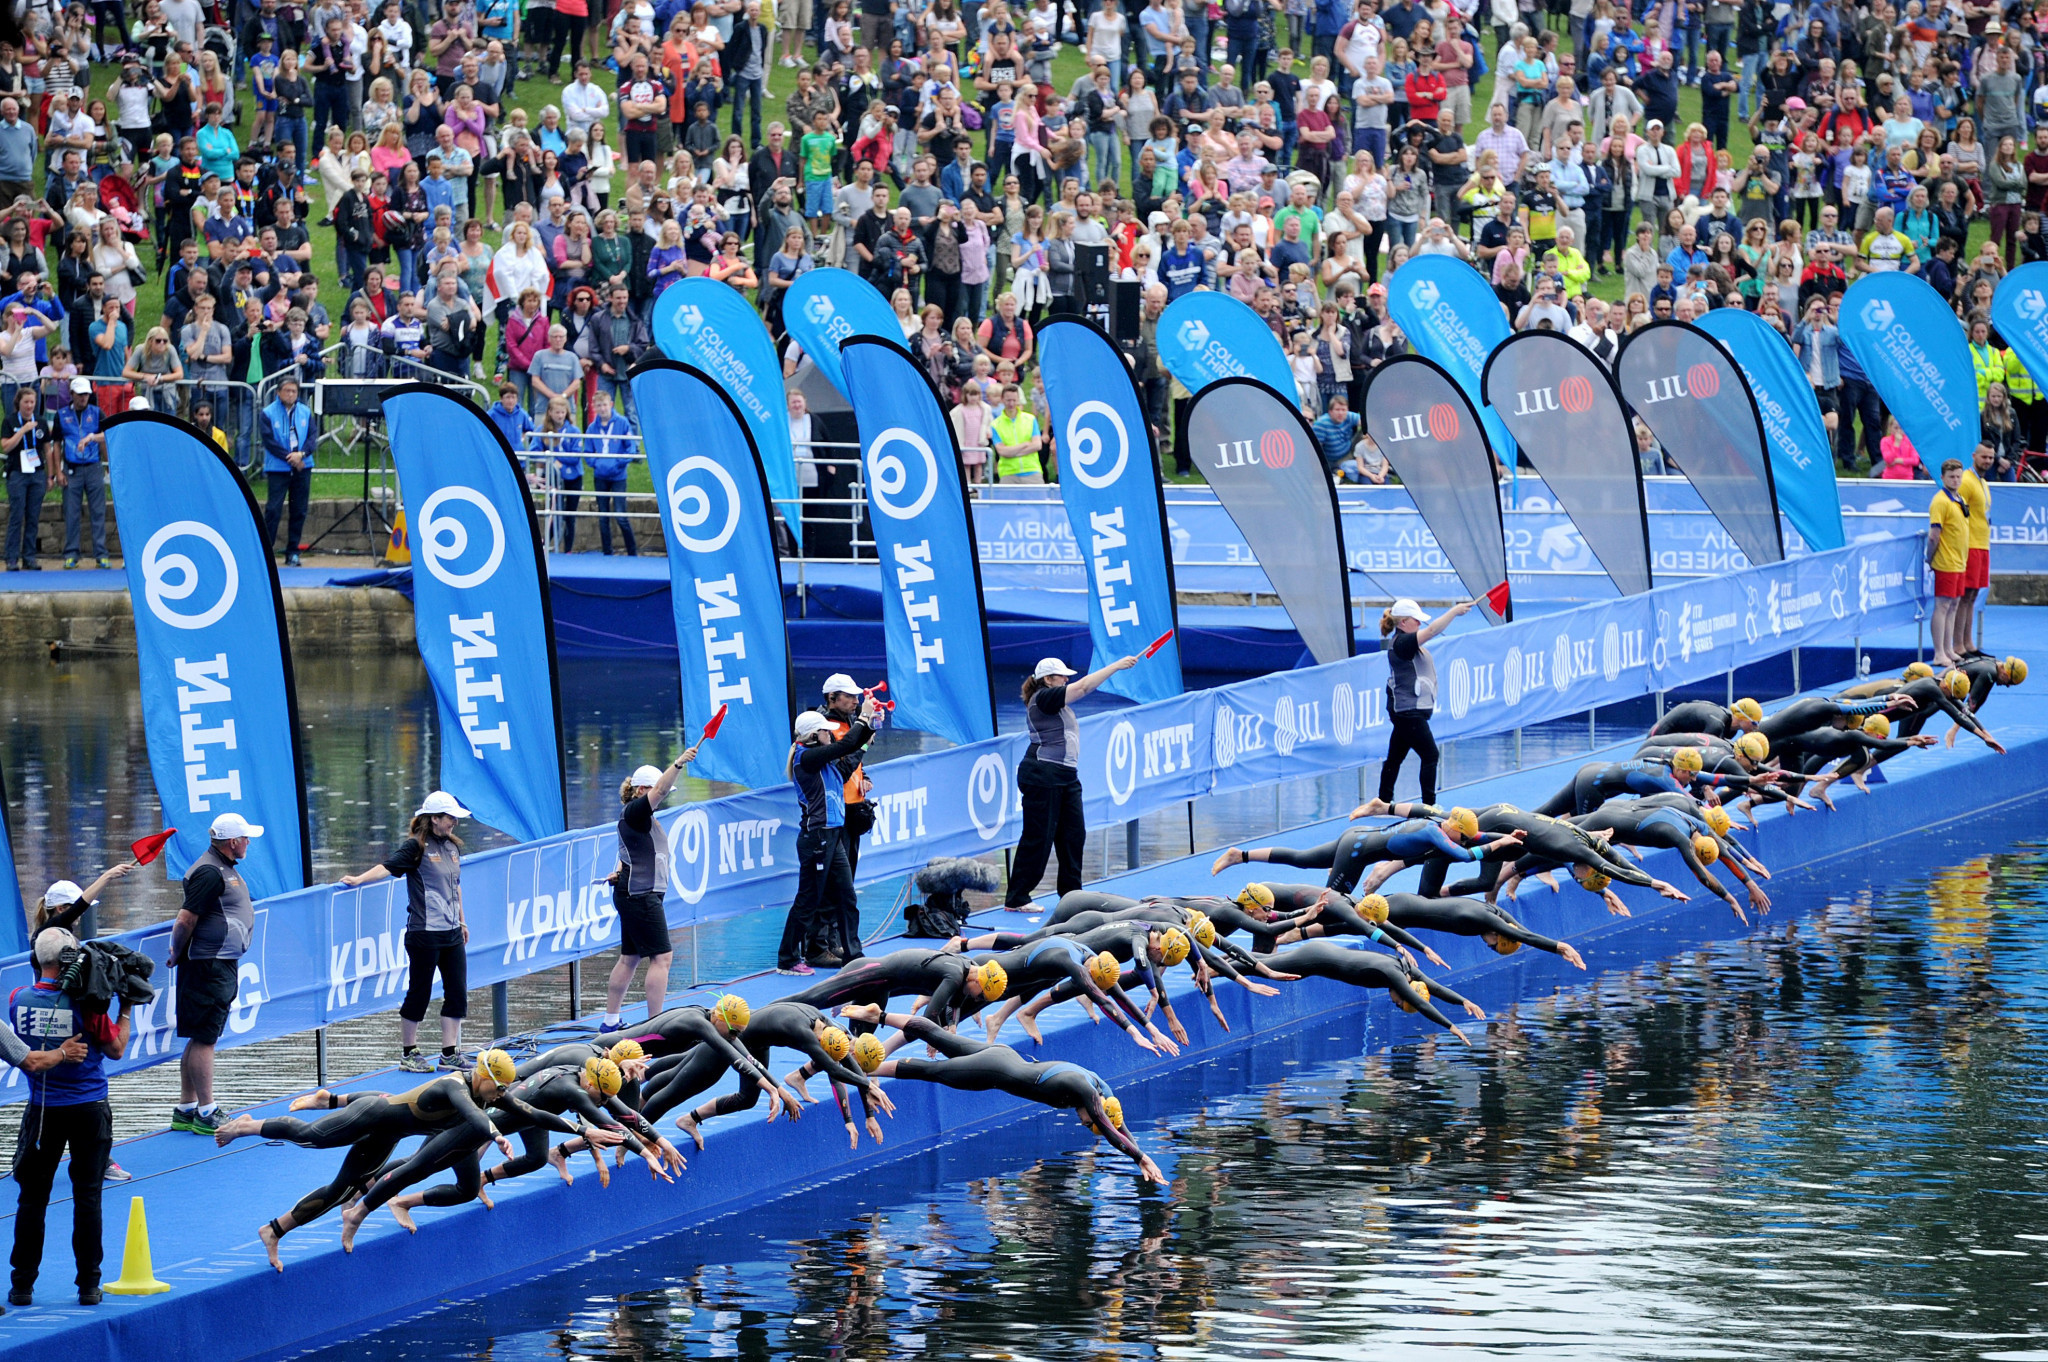 Brownlees return home as World Triathlon Series hits Leeds and Zaferes aims to continue her dominance